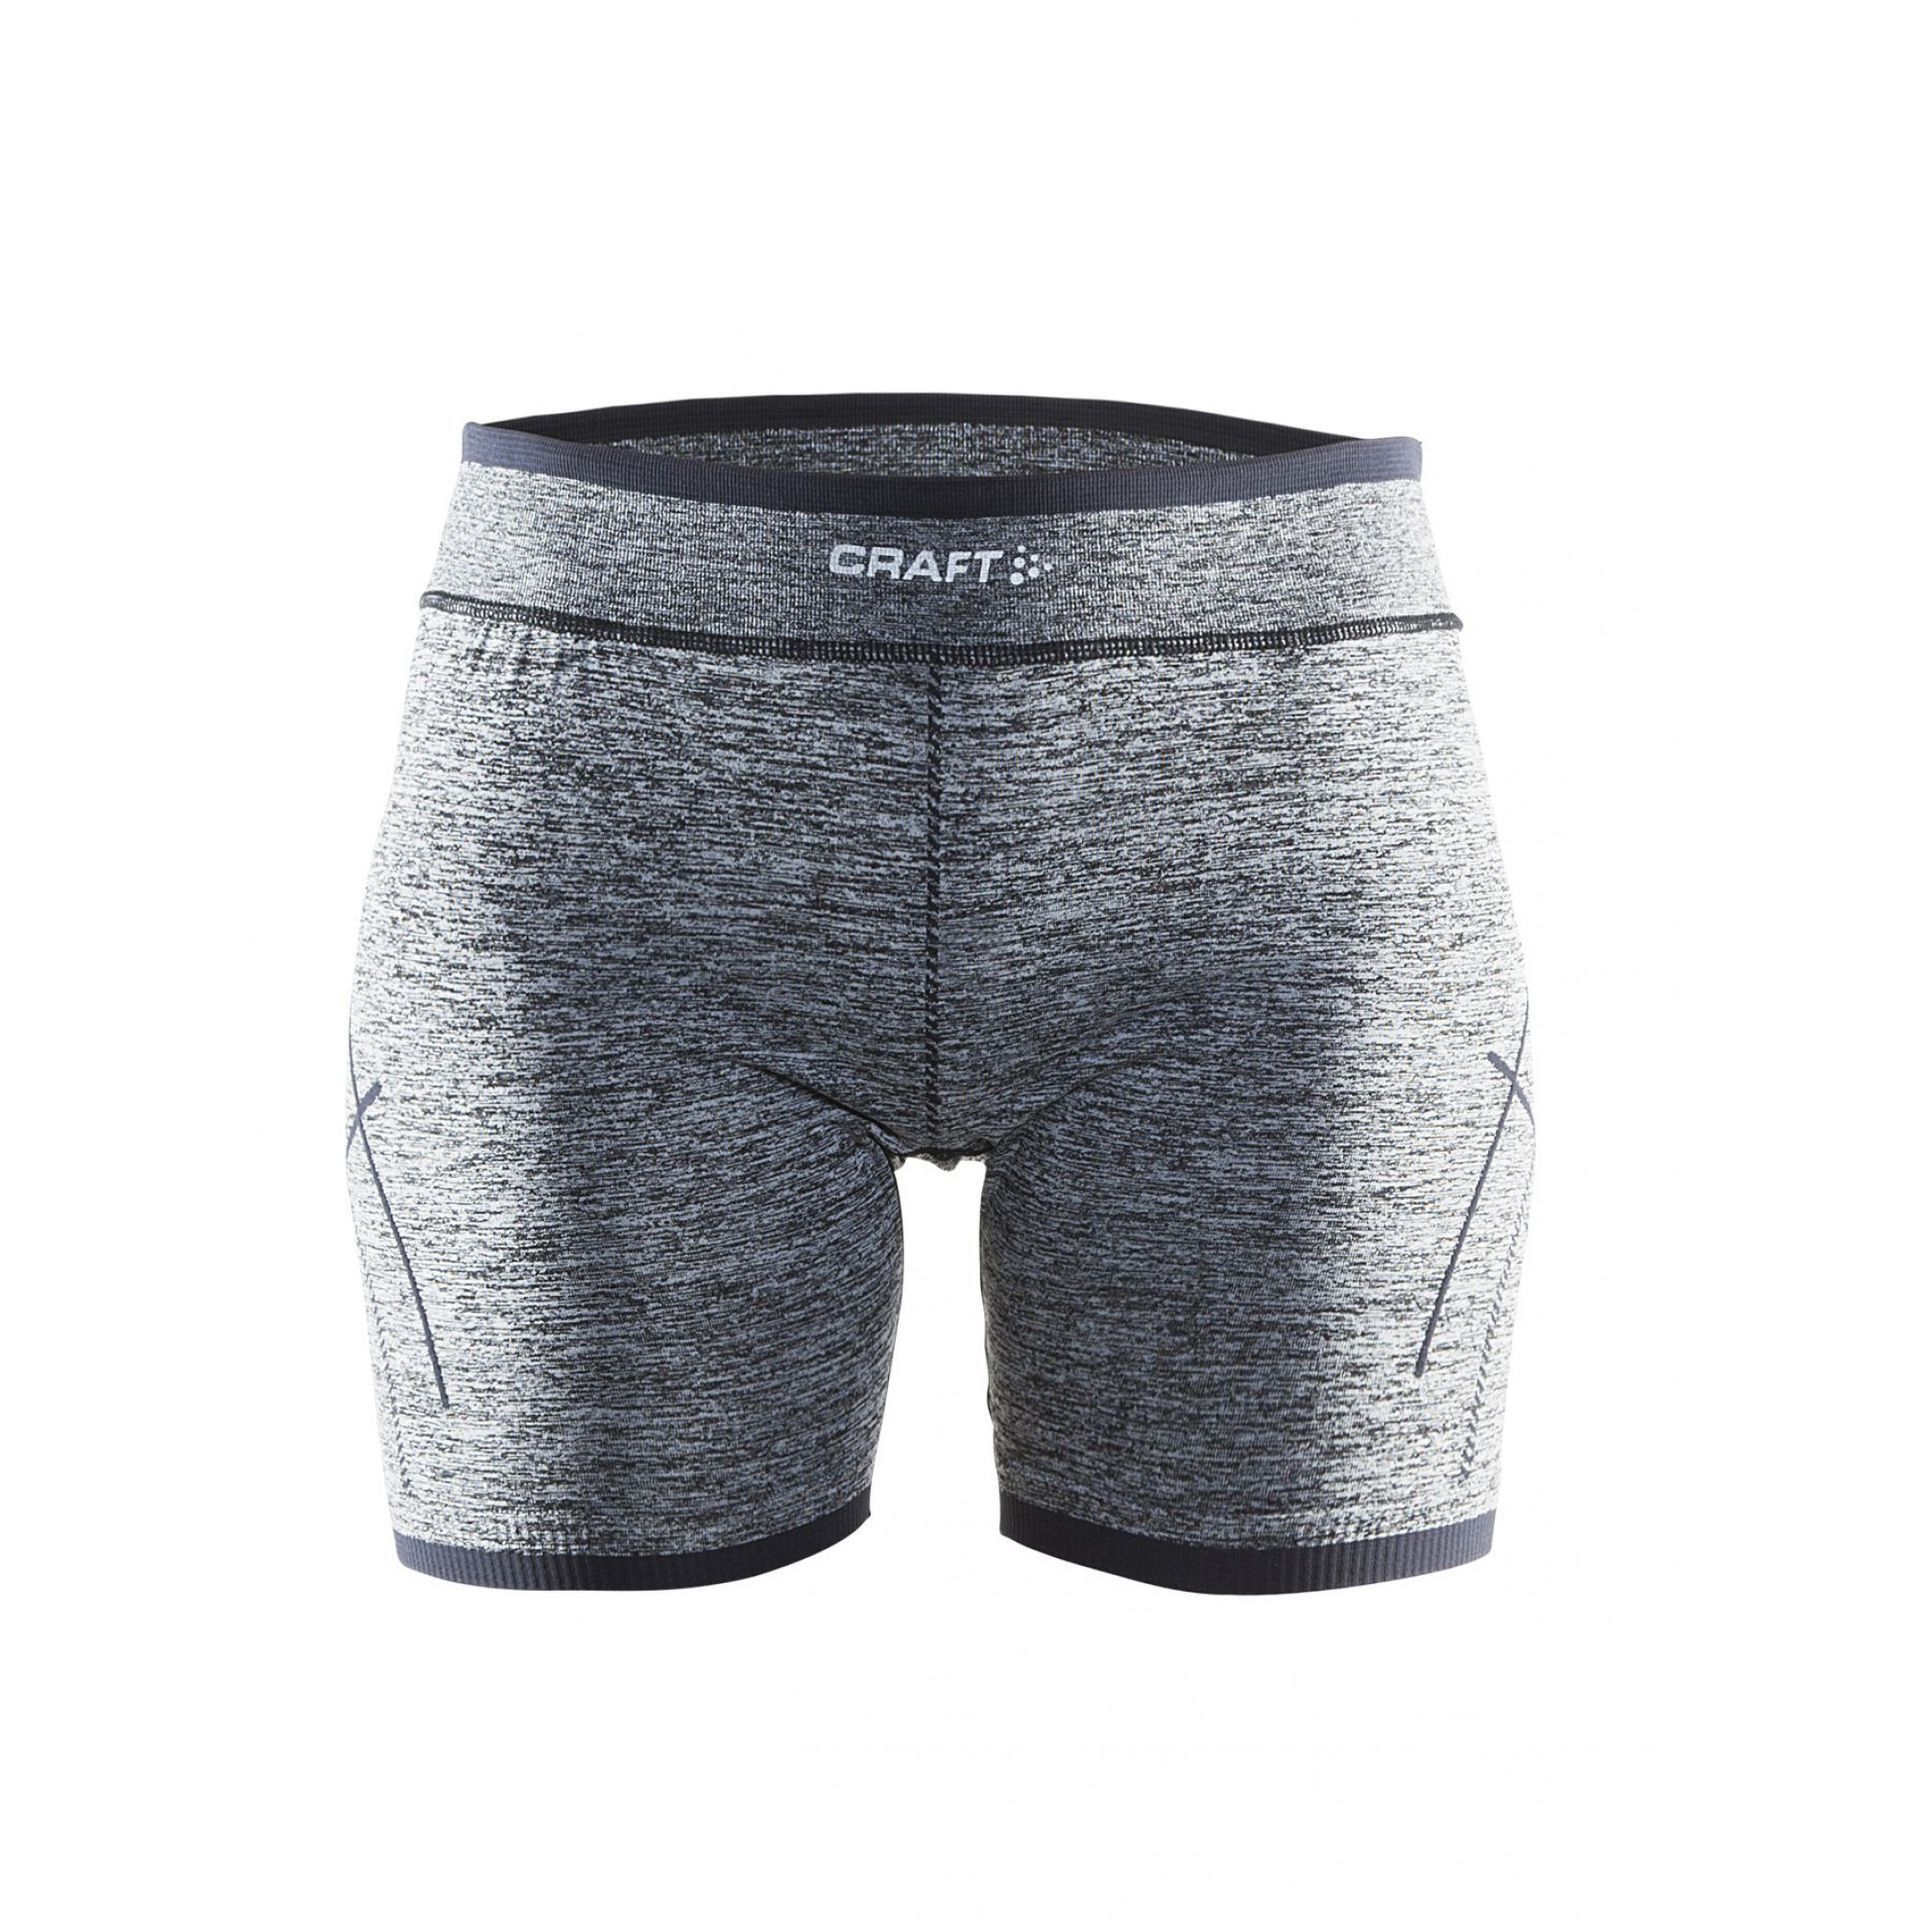 BOKSERKI CRAFT ACTIVE COMFORT BOXER 999 1